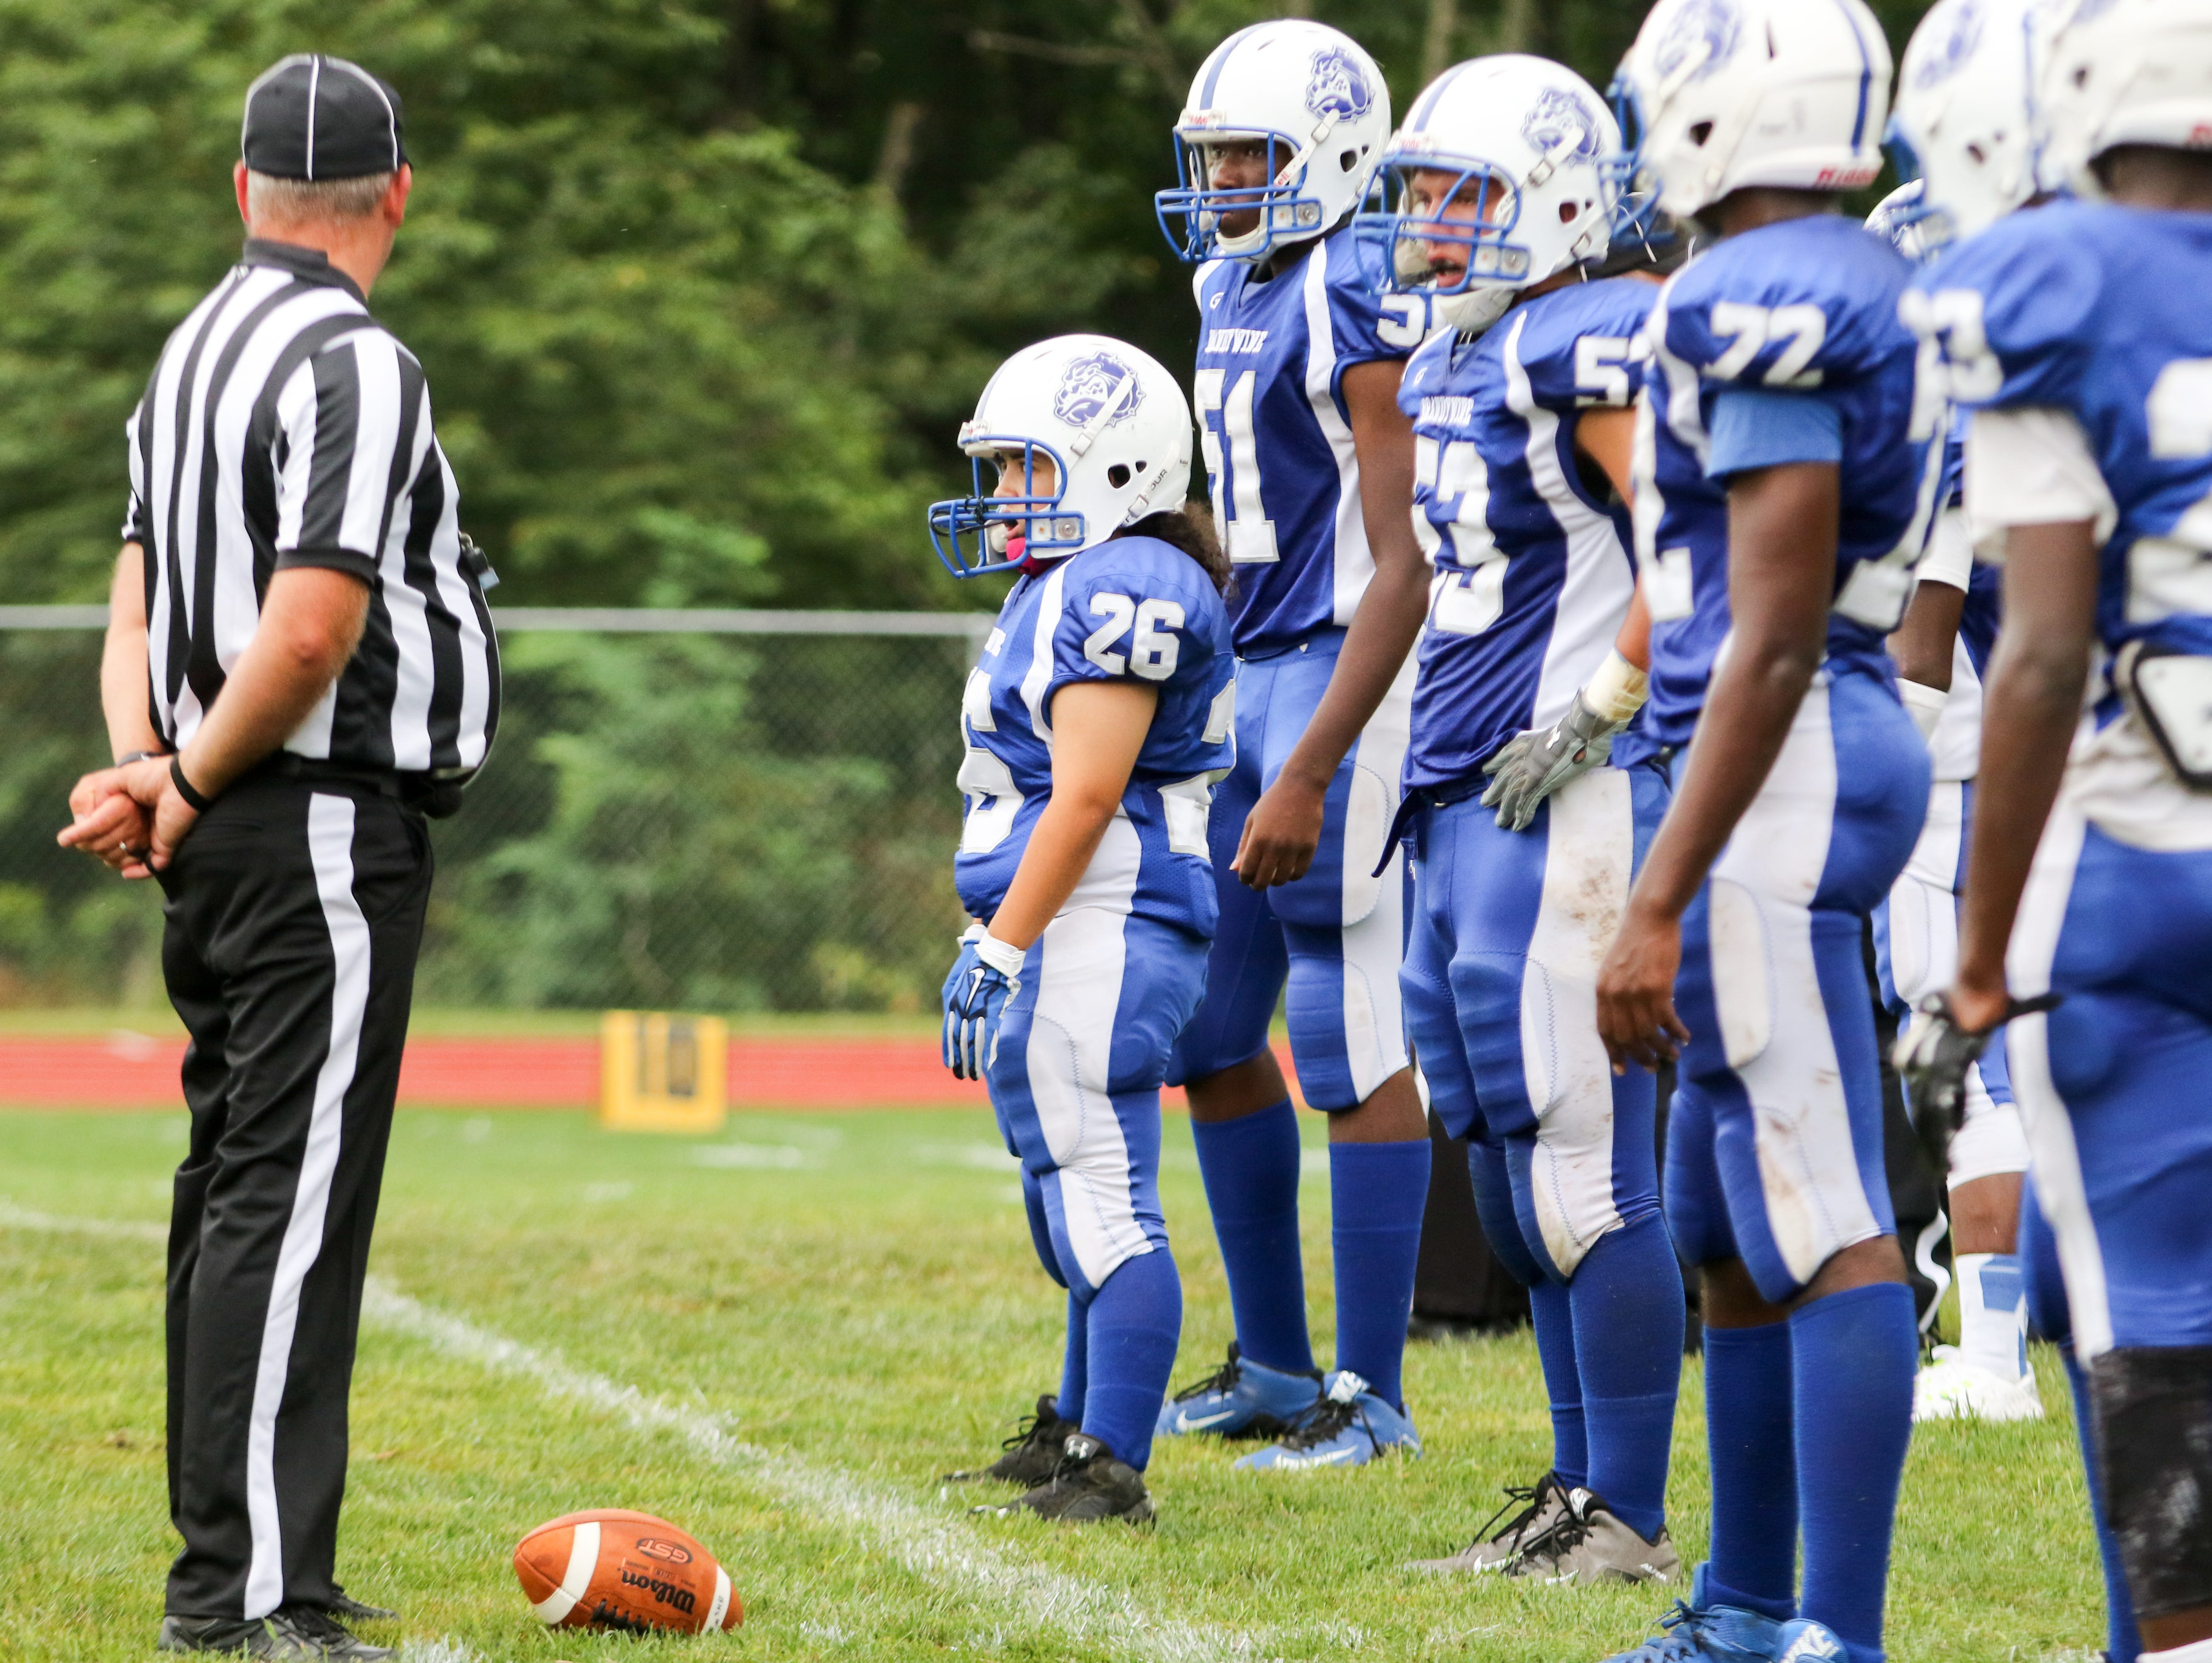 Felicia Perez stands at the line of scrimmage during a game last season against Mount Pleasant.